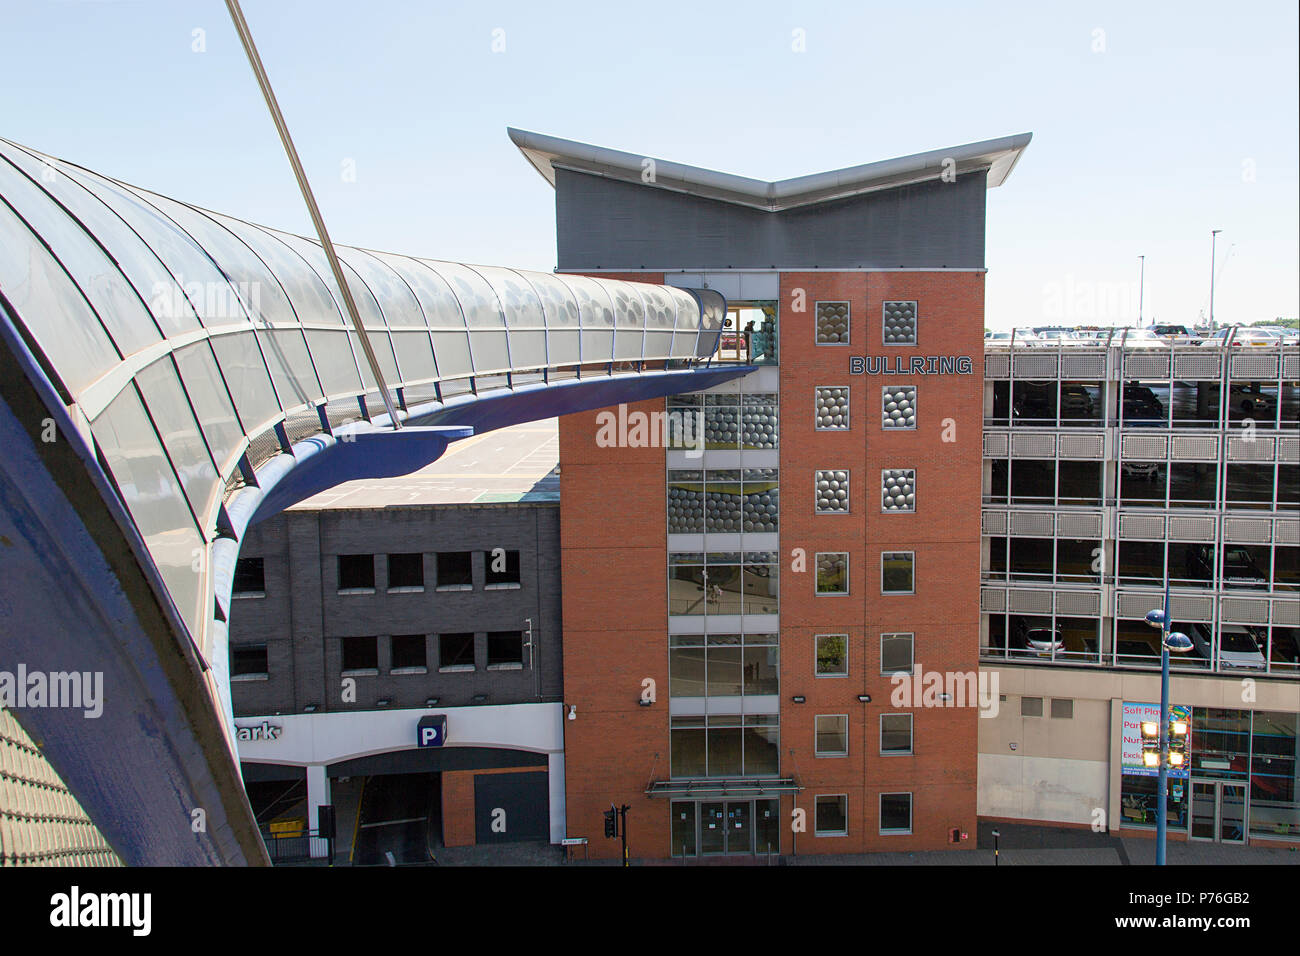 Birmingham, UK: June 29, 2018: Selfridges Moor Street Car Park. A conveniently located multi-story car park opposite the iconic Selfridges building. Stock Photo